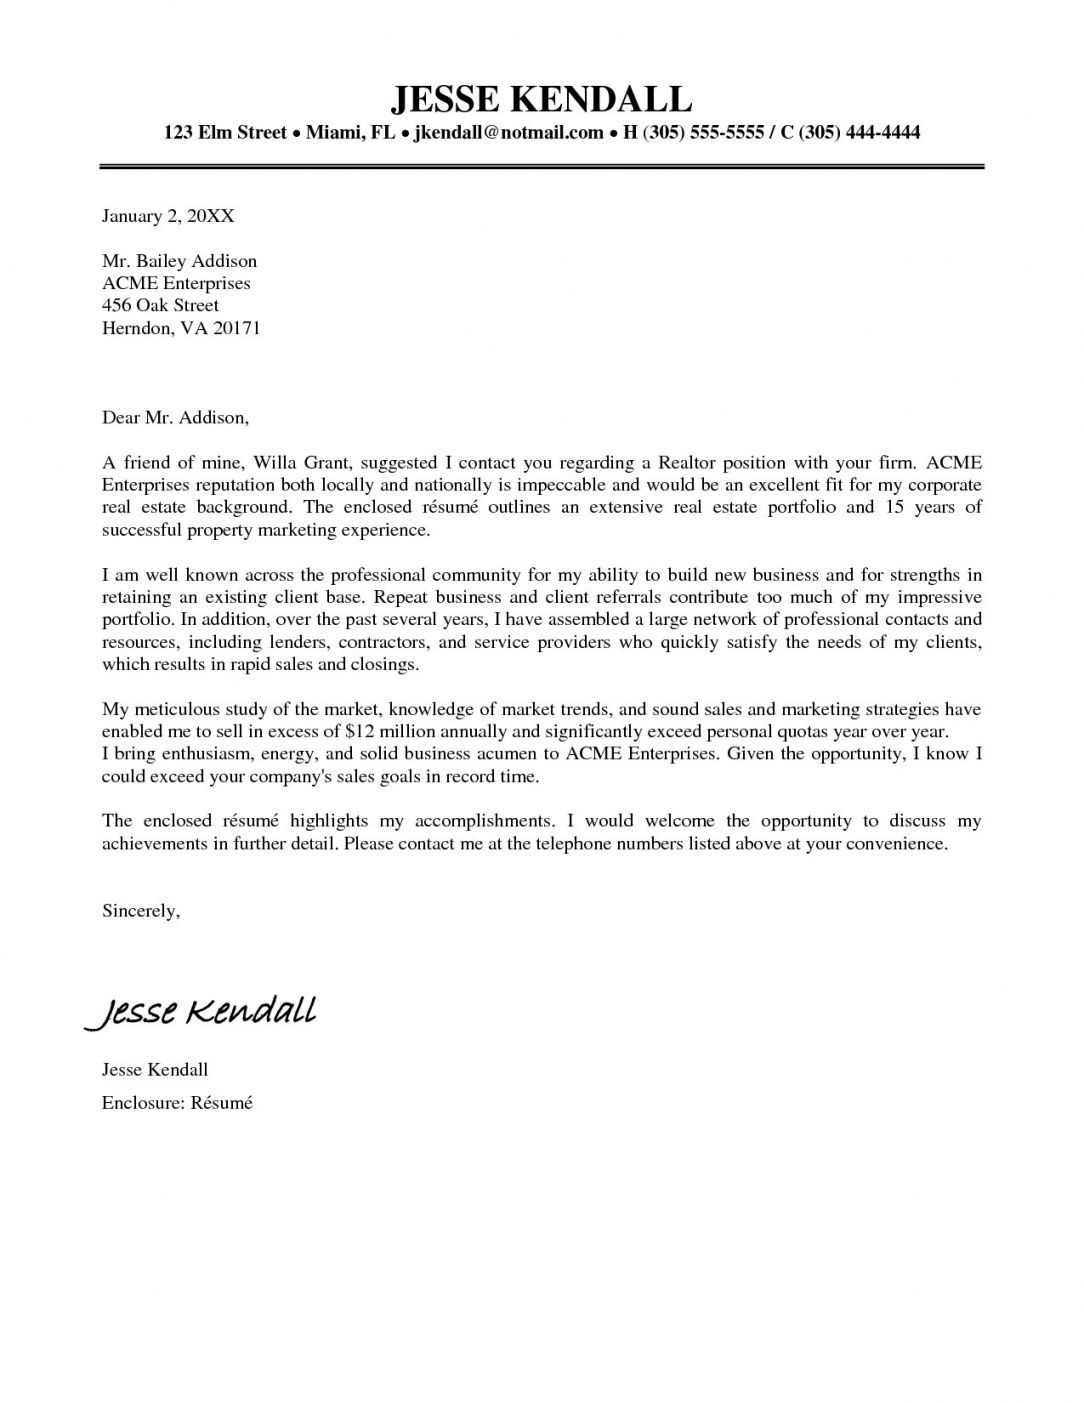 Real Estate Cover Letter Template in 2020 (With images